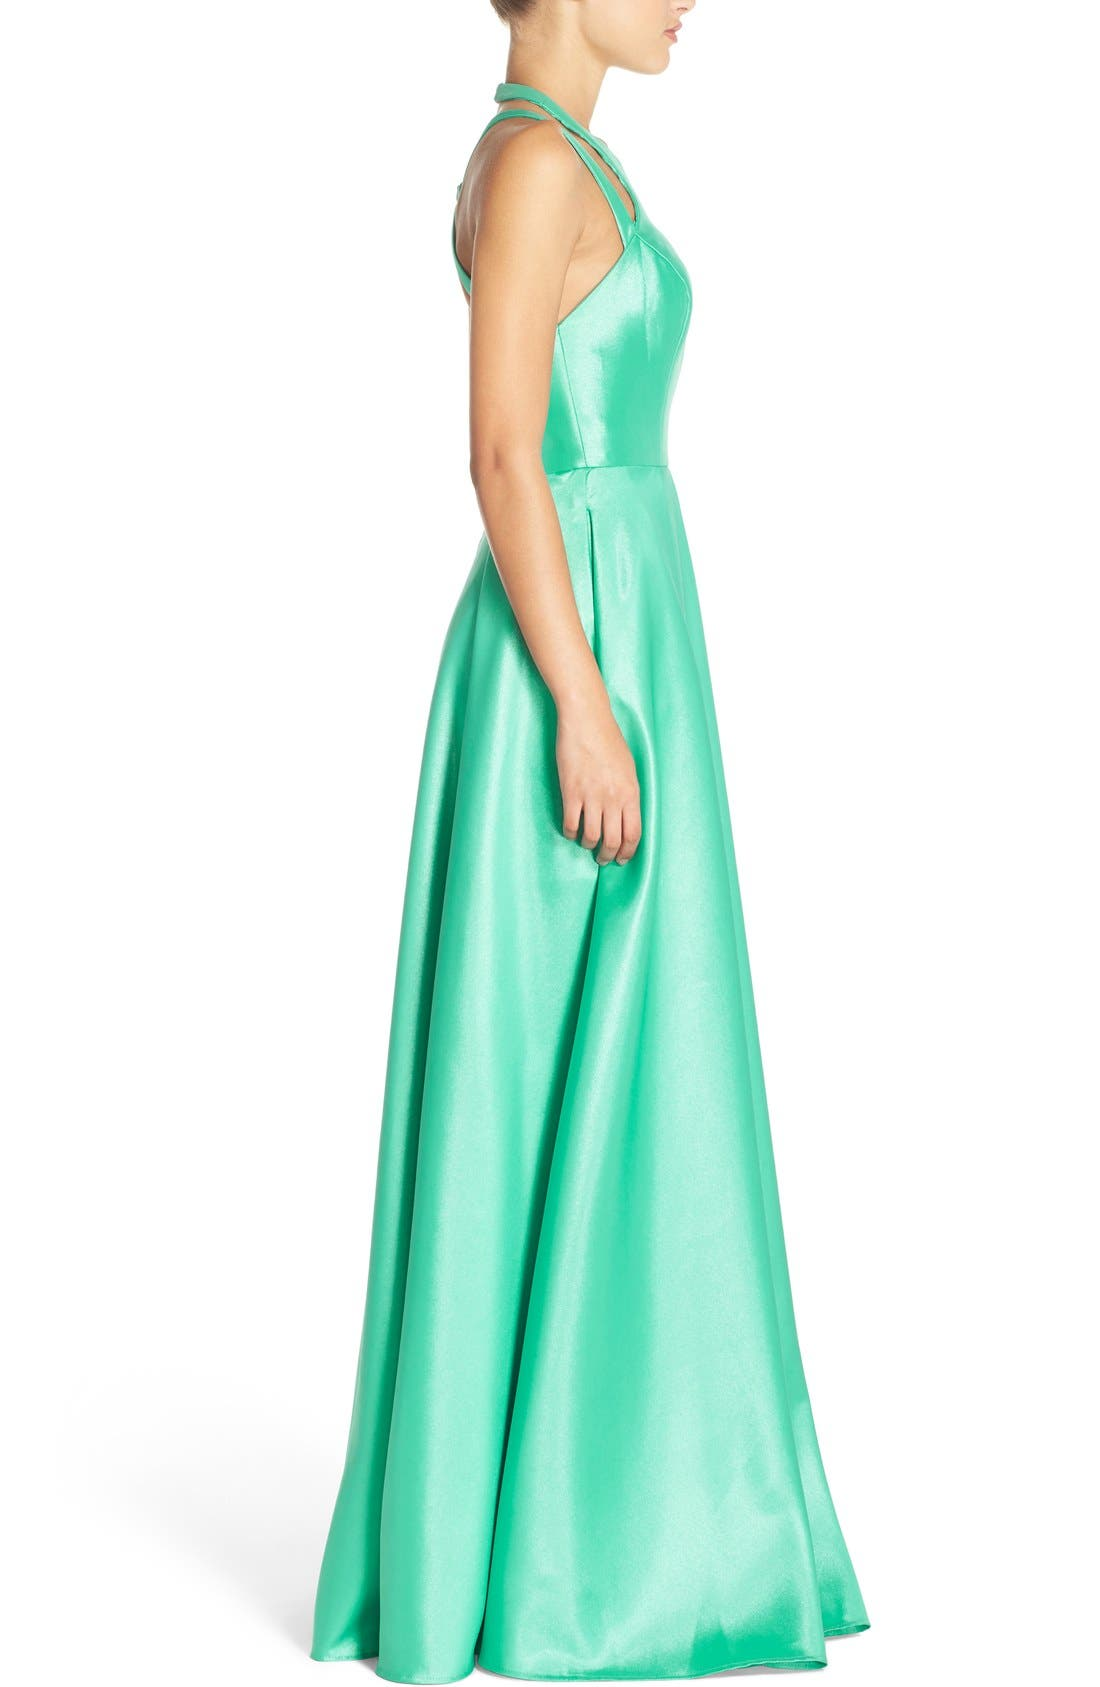 FAVIANA,                             Shimmer Satin Halter Gown with Underskirt,                             Alternate thumbnail 3, color,                             439